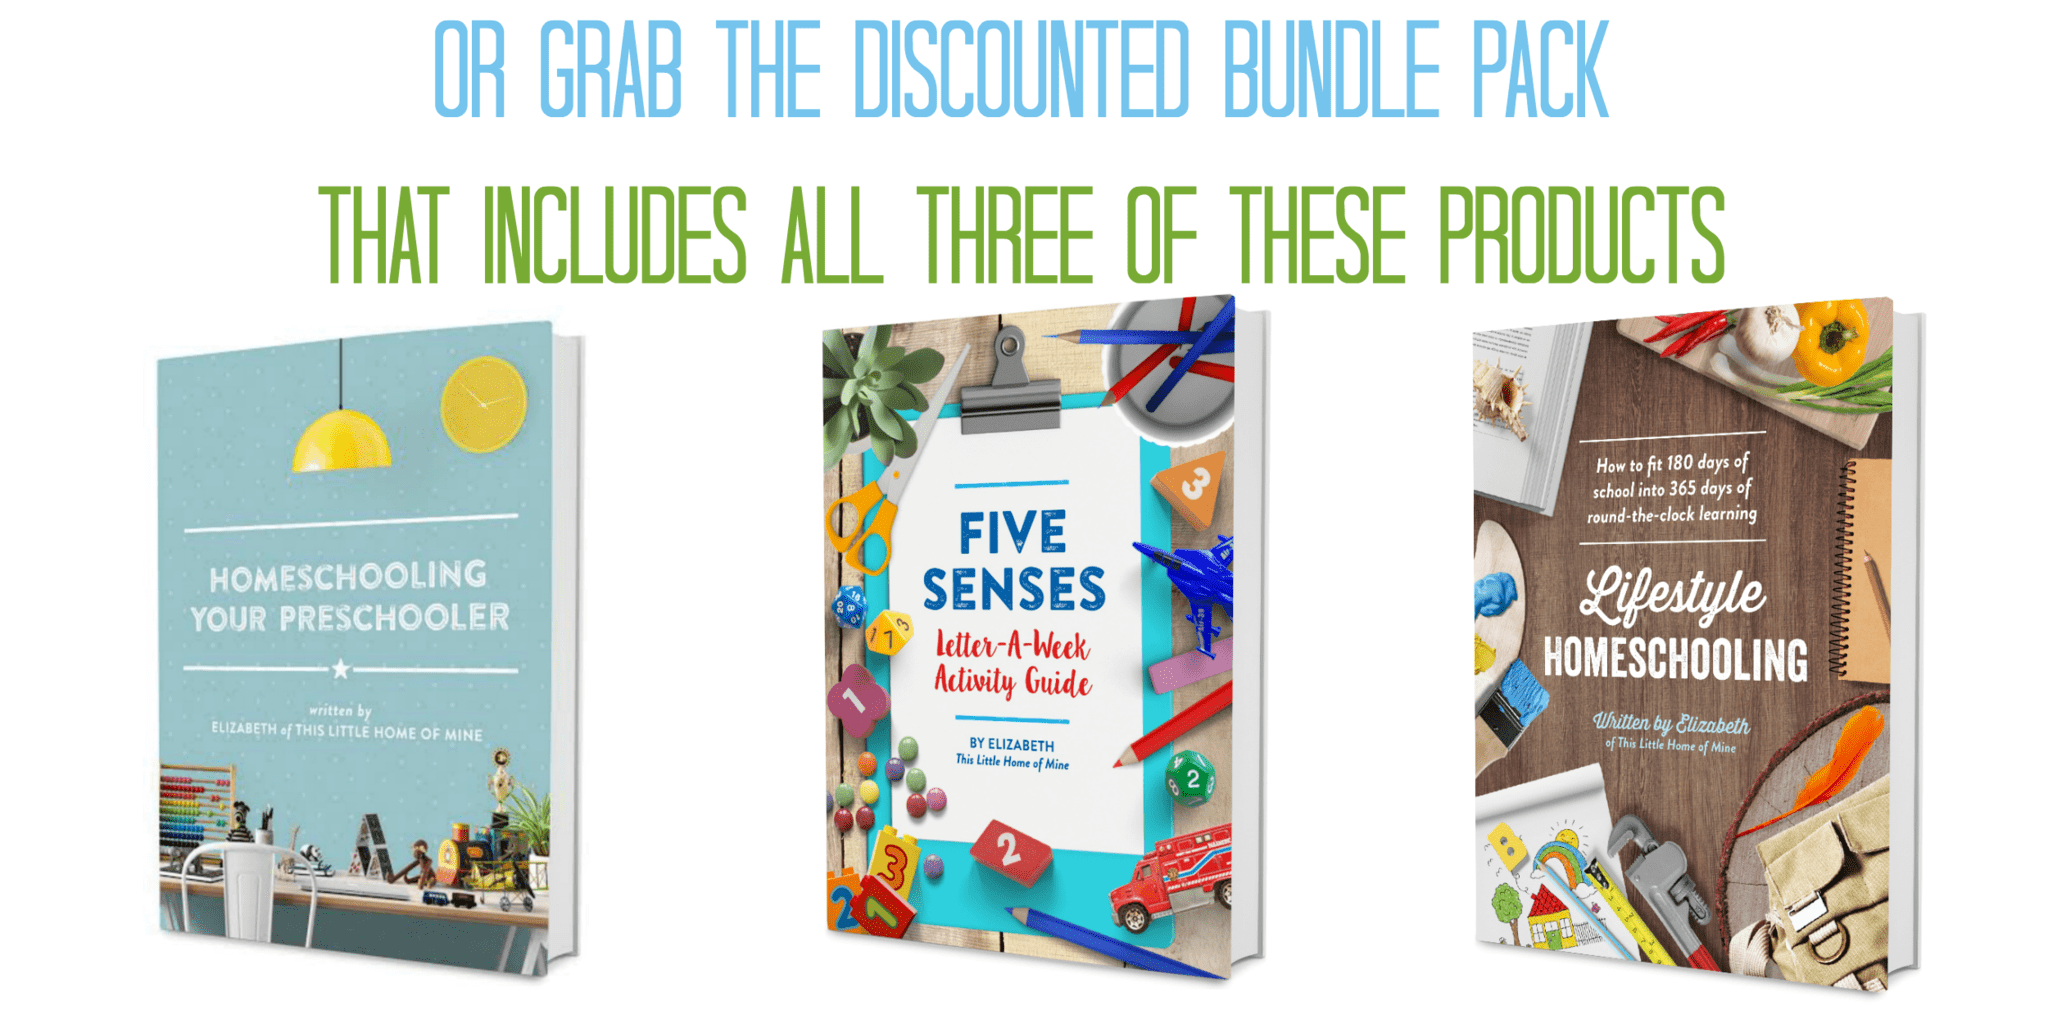 Lifestyle Homeschooling Bundle Pack - This Little Home of Mine